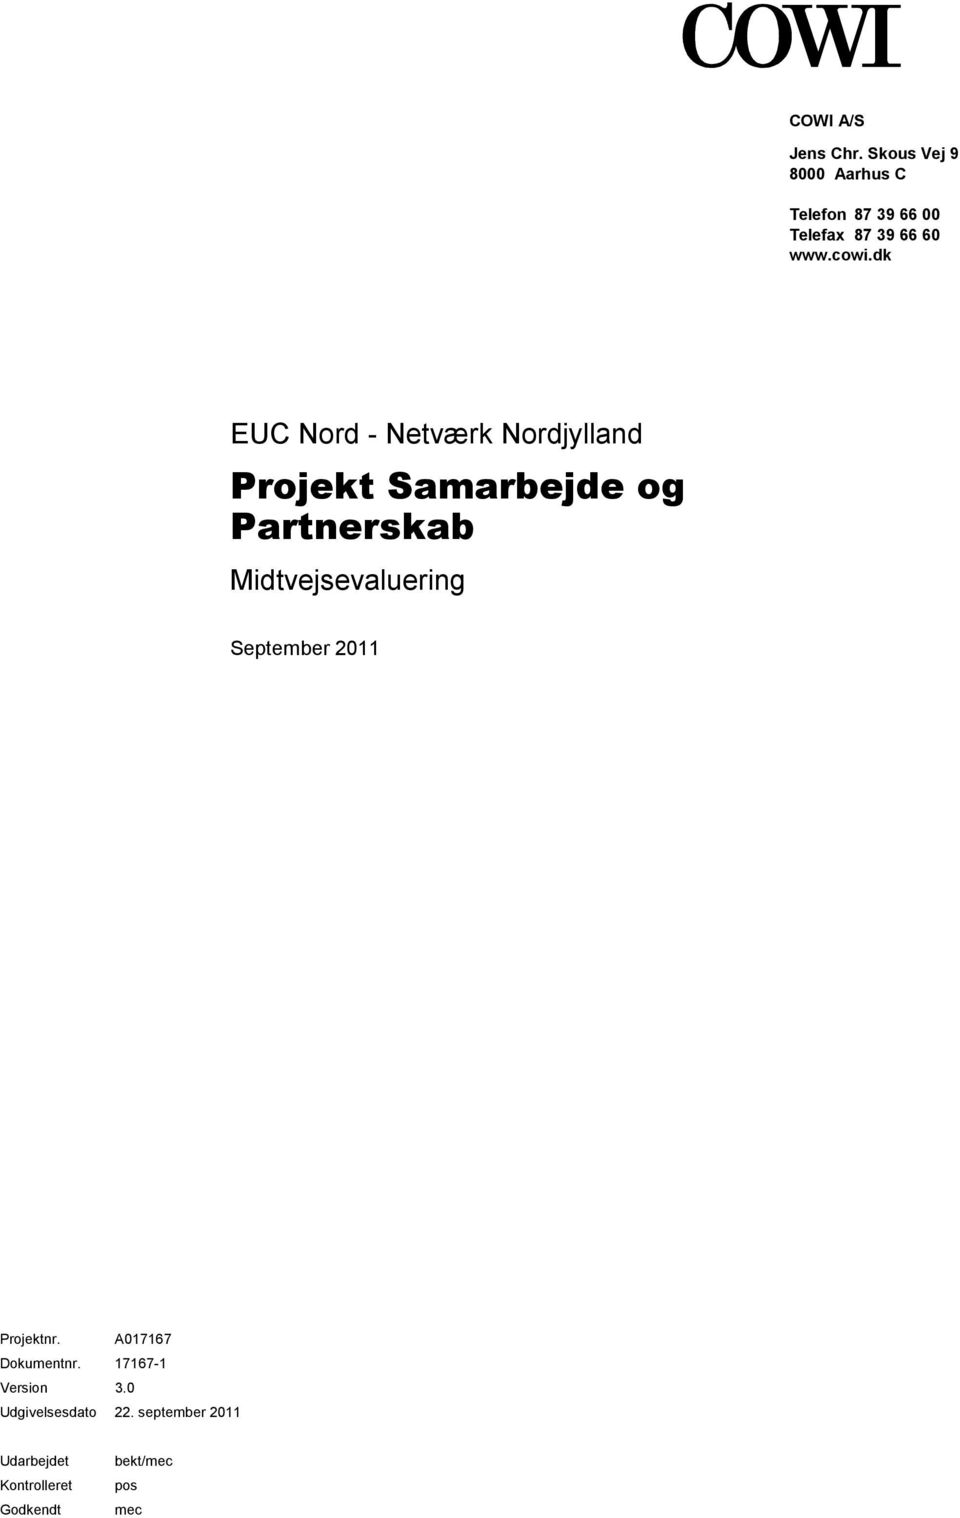 Midtvejsevaluering September 2011 Projektnr A017167 Dokumentnr 17167-1 Version